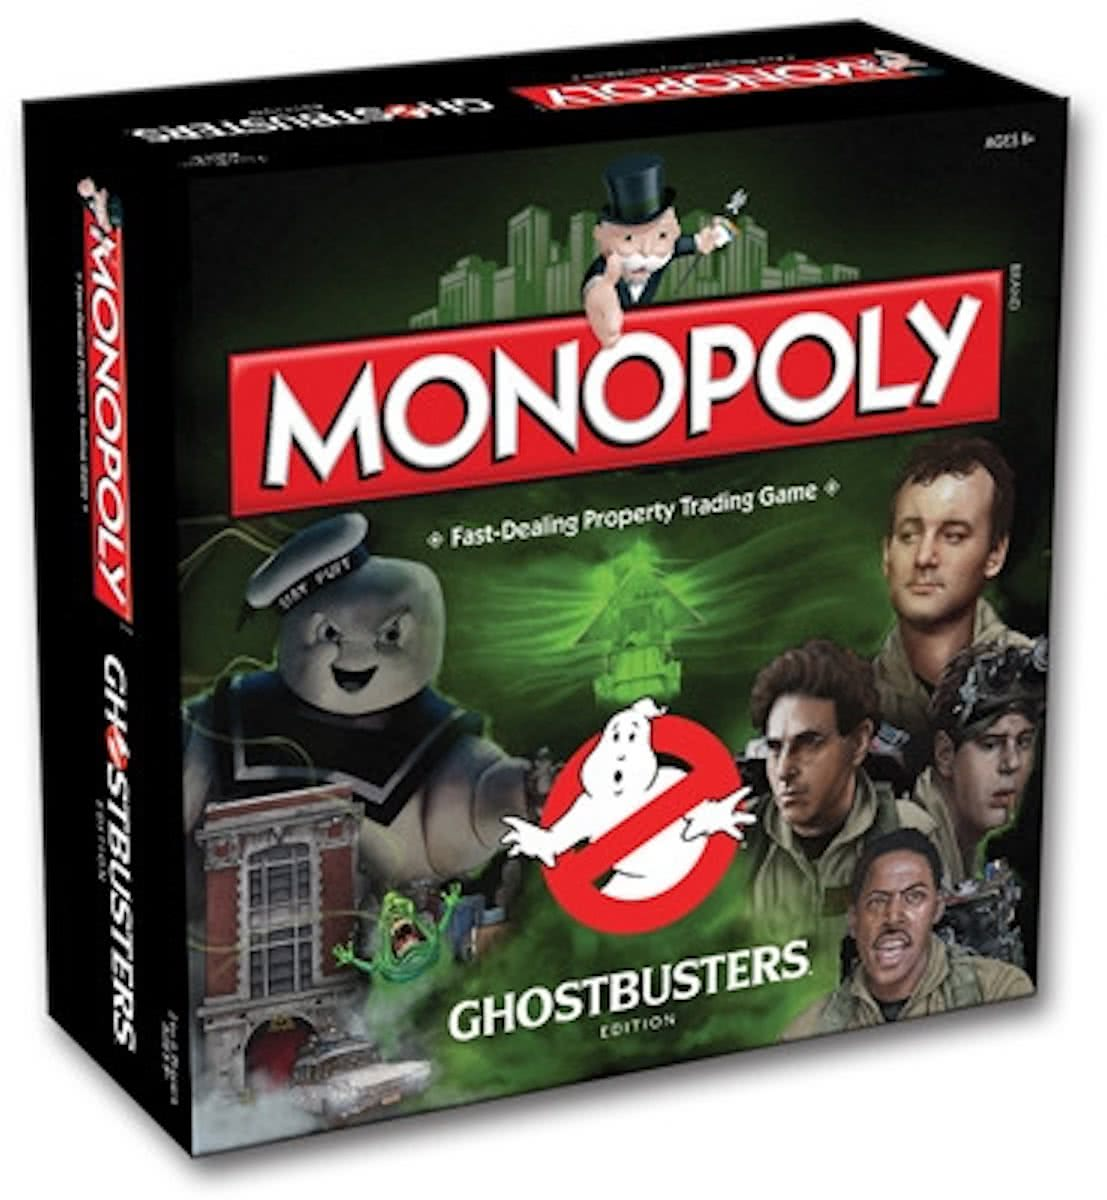 GhostBusters - Monopoly /Toys